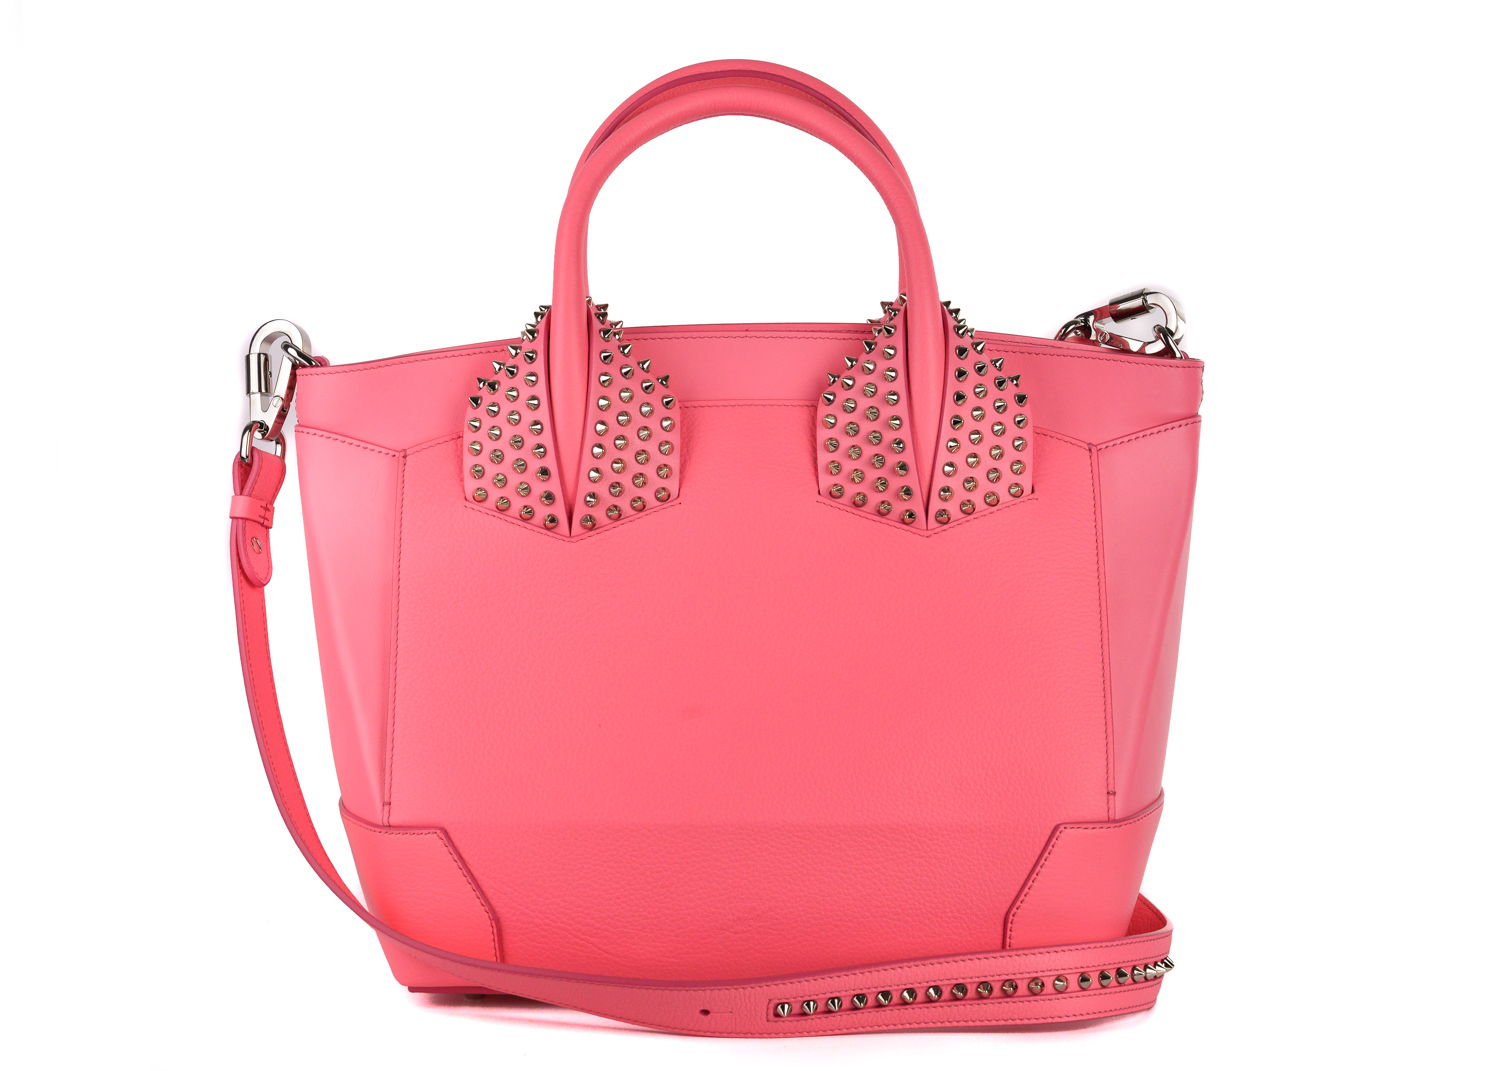 aeec2d976c3 Christian Louboutin Womens Eloise Pink Large Studded Leather Tote ...